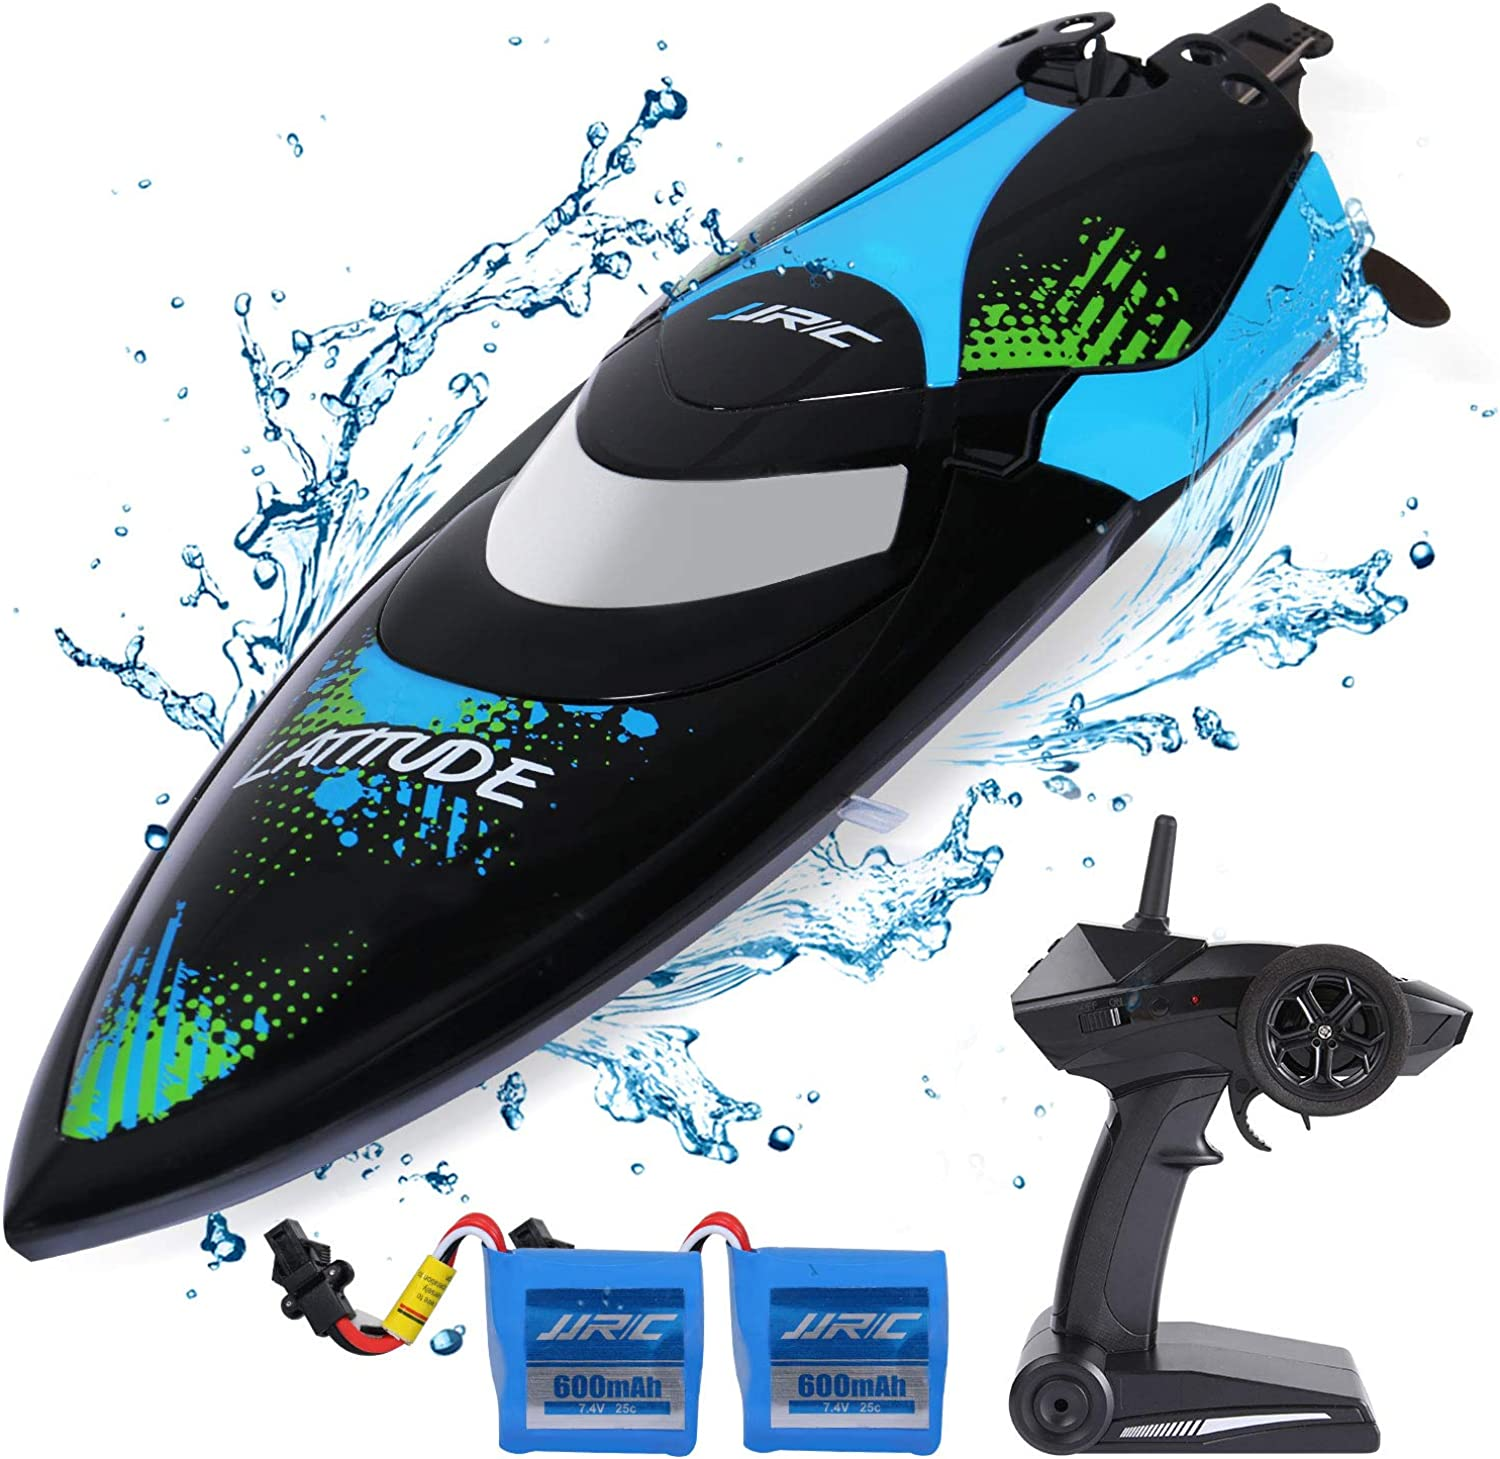 SGILE RC Boat Toys for Pool & Outdoor Use  2.4GHz 25KM H HighSpeed Remote Control Racing Boat with Extra Battery  Double Waterproof Layers, Capsize Recovery, Gift Set for Adults & KidsBlack